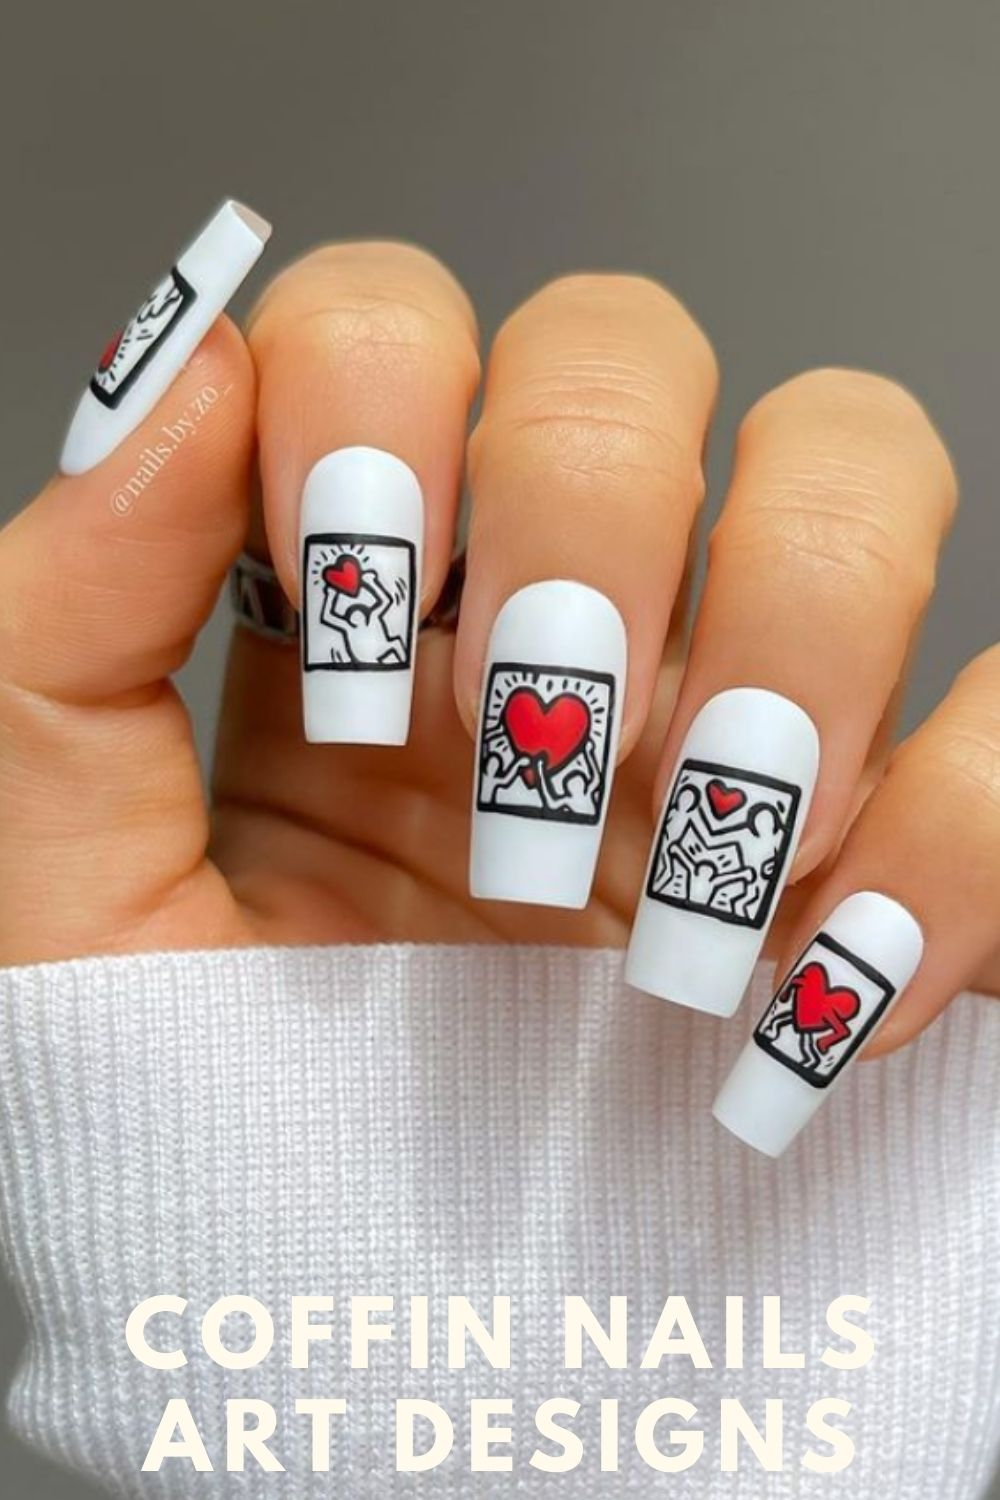 White coffin nails with heart